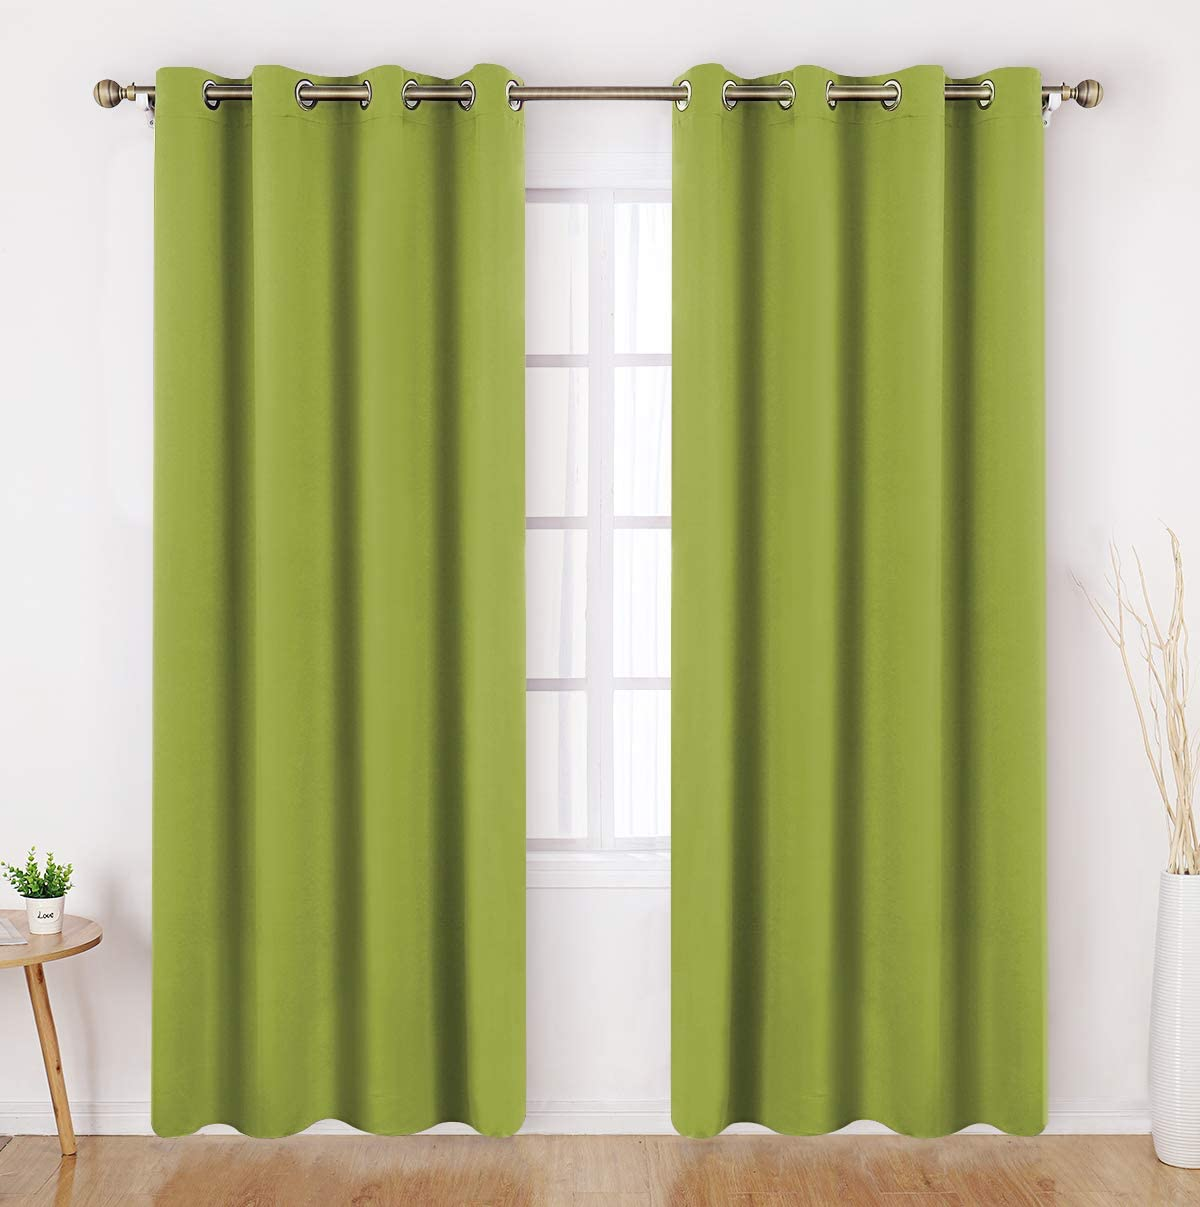 HOMEIDEAS Fresh Green Blackout Curtains 52 X 96 Inch Long Set of 2 Panels Room Darkening Bedroom Curtains, Thermal Grommet Light Bolcking Window Curtains for Living Room